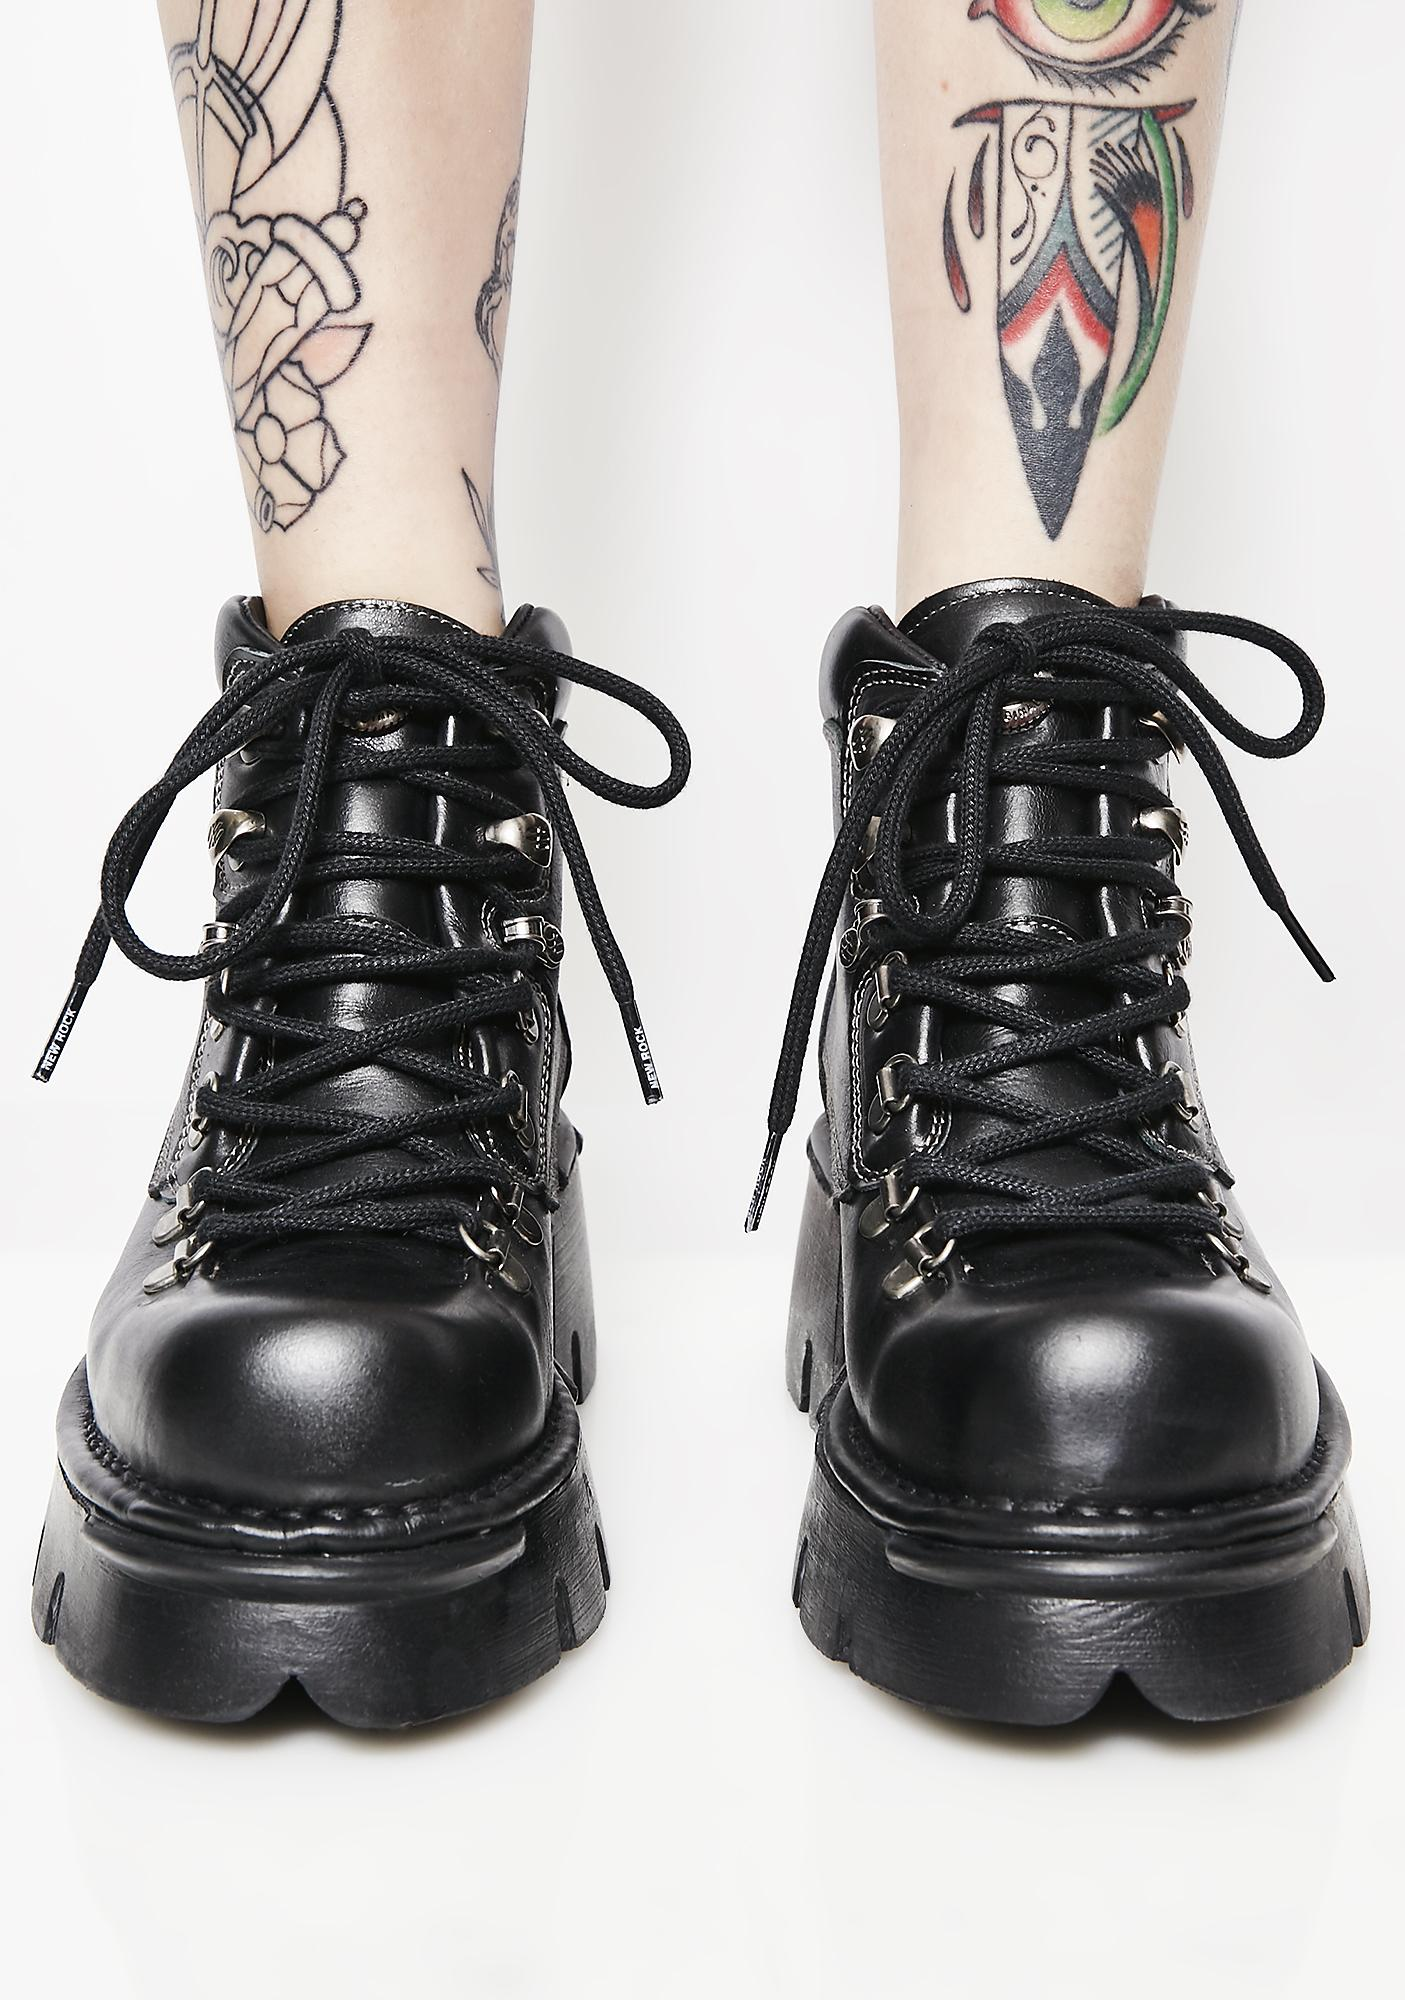 New Rock Leather Platform Boots